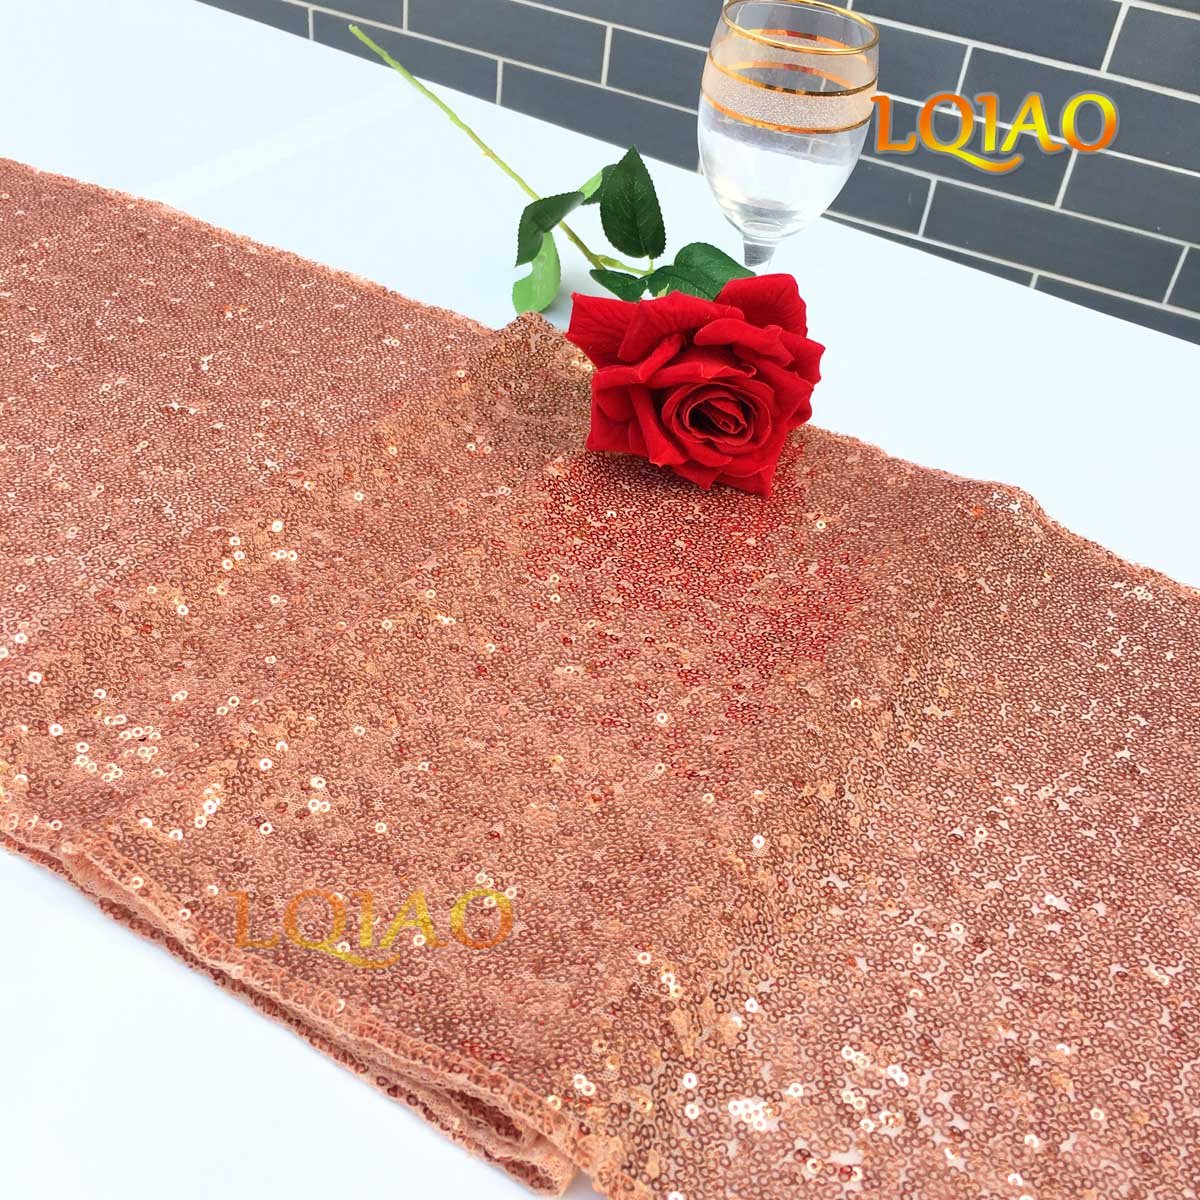 LQIAO Christmas Table Runner Sequin 12x108-in, Rose Gold, Shiny Fabric Birthday/Wedding/Party Decoration(wholesale Possible), Pack of 20 PCS by LQIAO